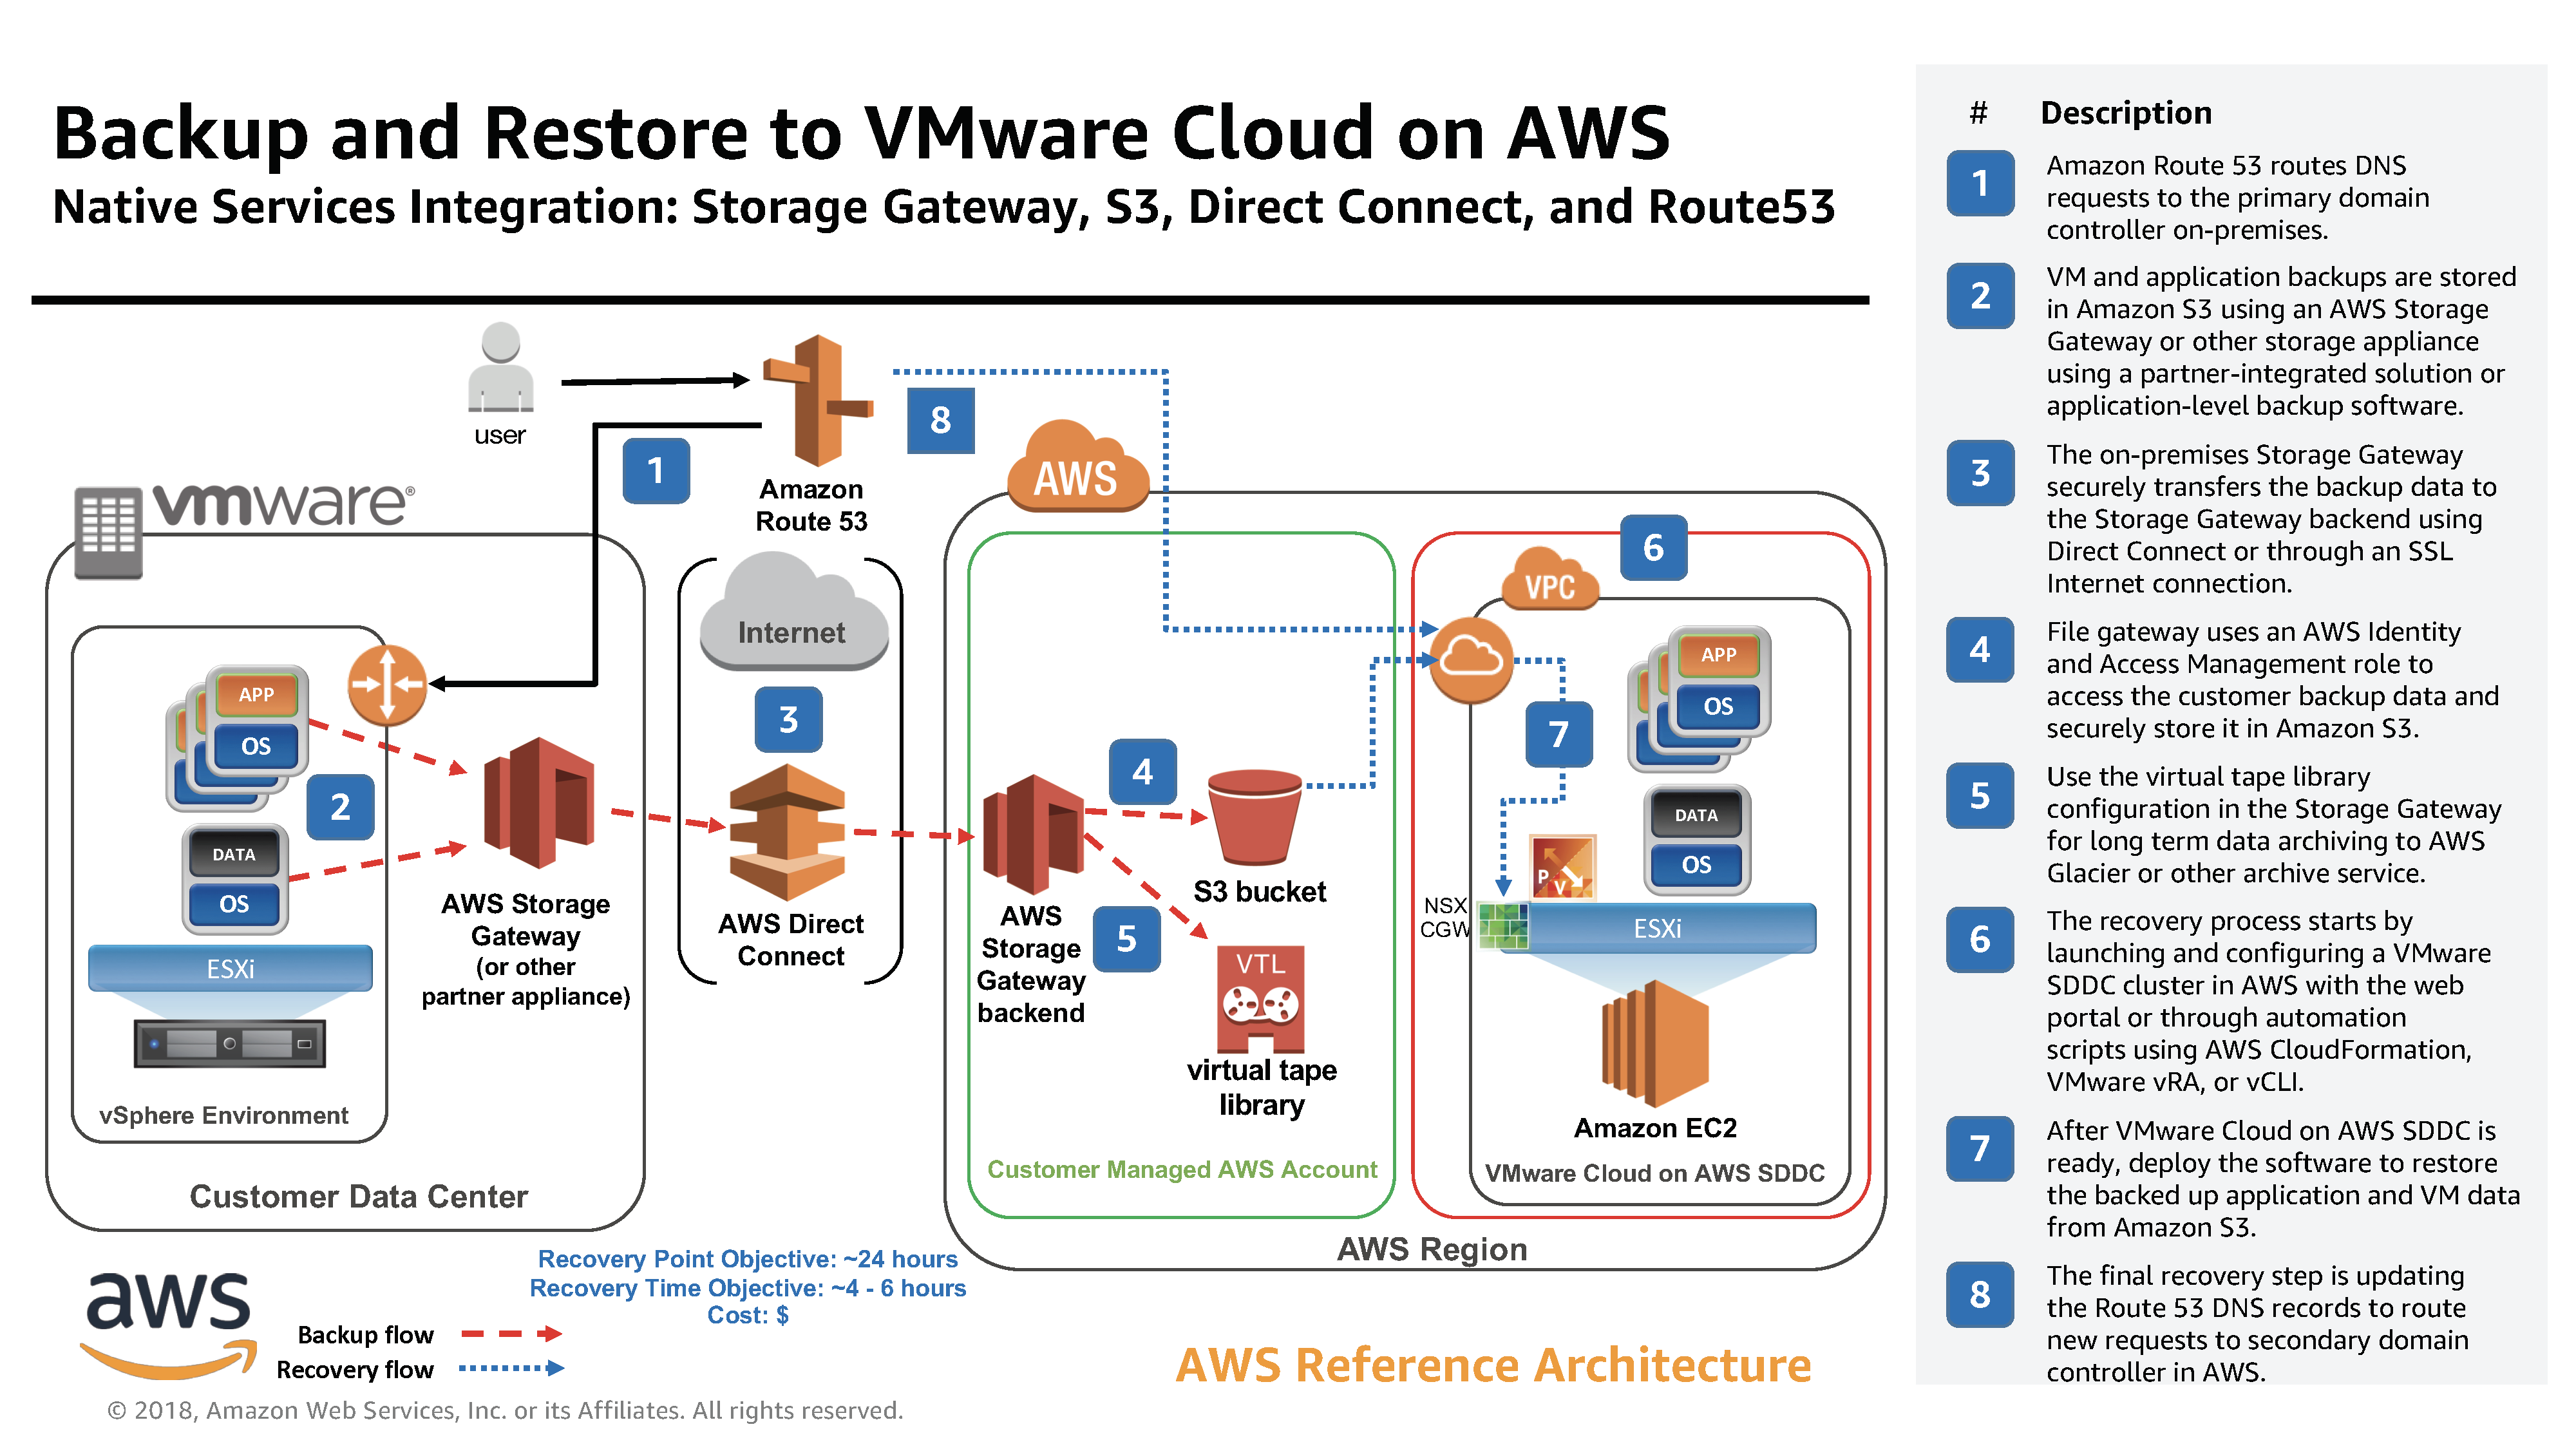 aws-reference-architecture_VMwareCloudonAWS_DR_1